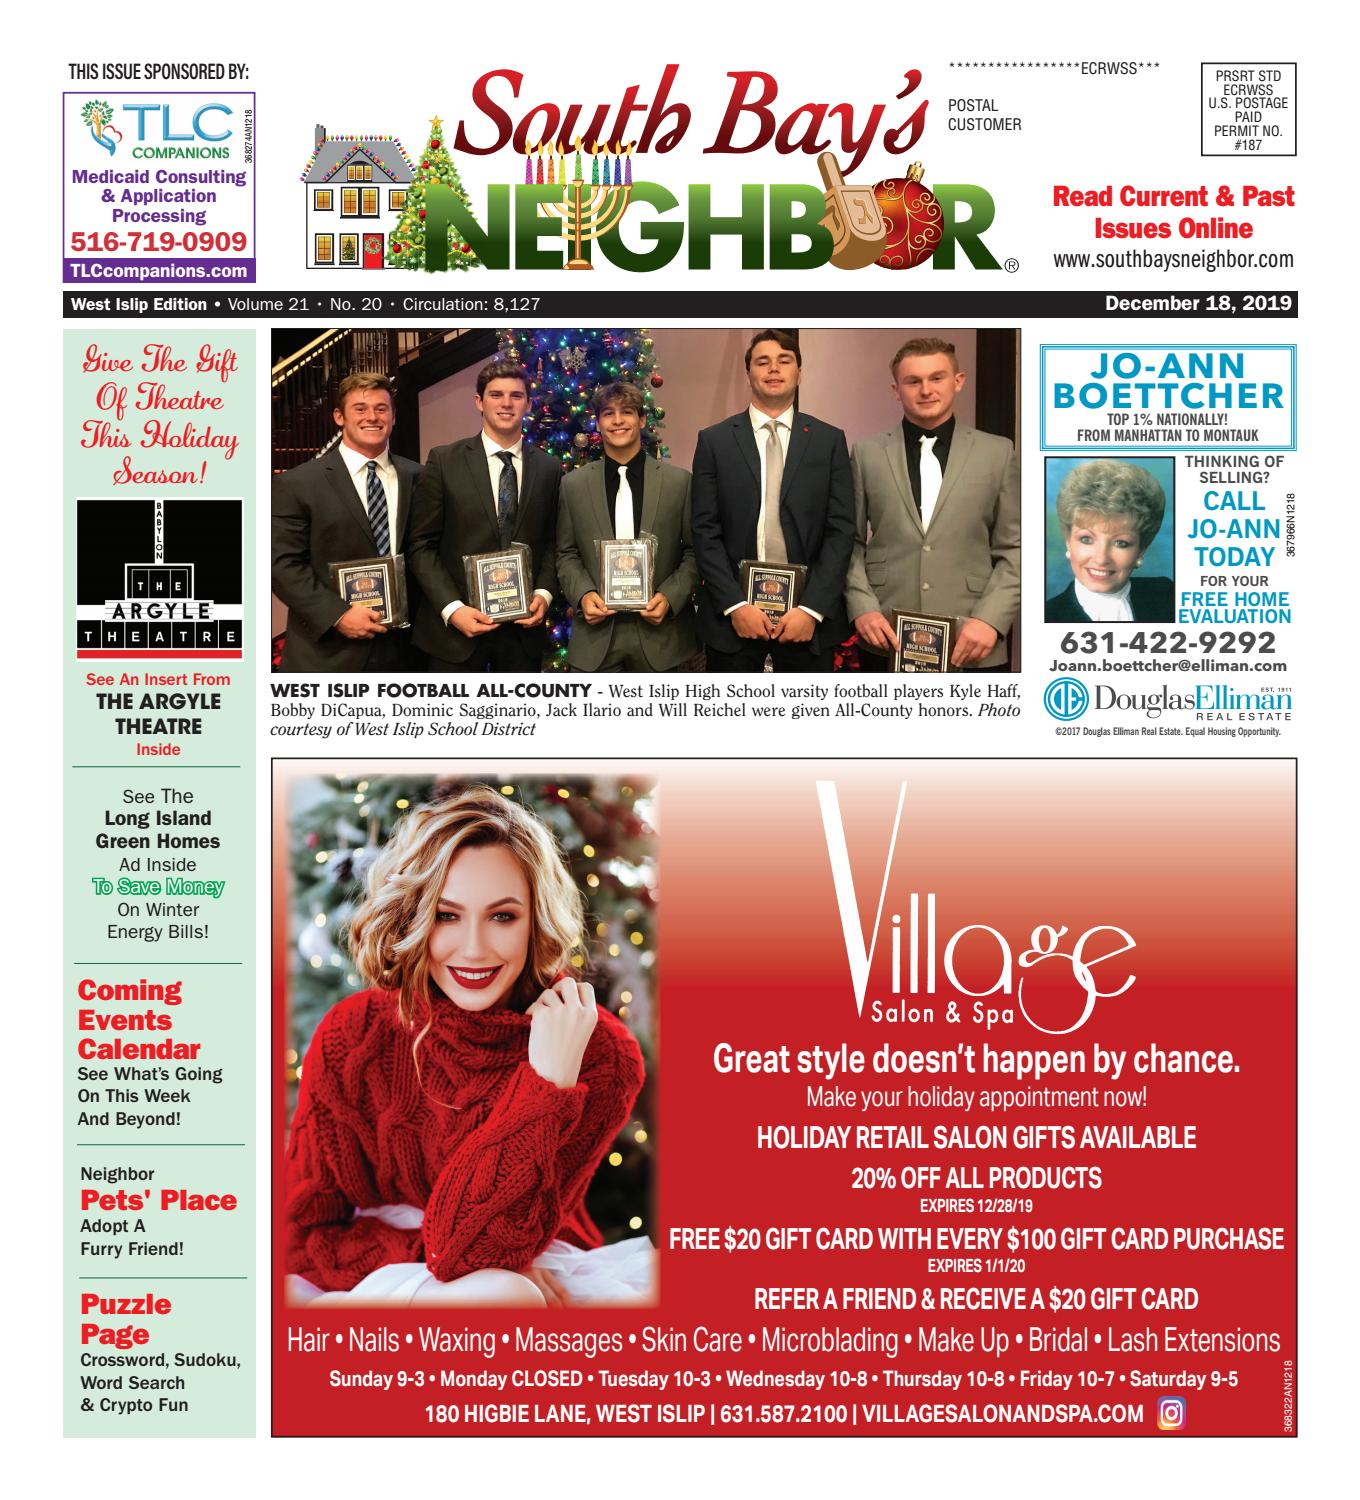 December 18 2019 West Islip By South Bay S Neighbor Newspapers Images, Photos, Reviews